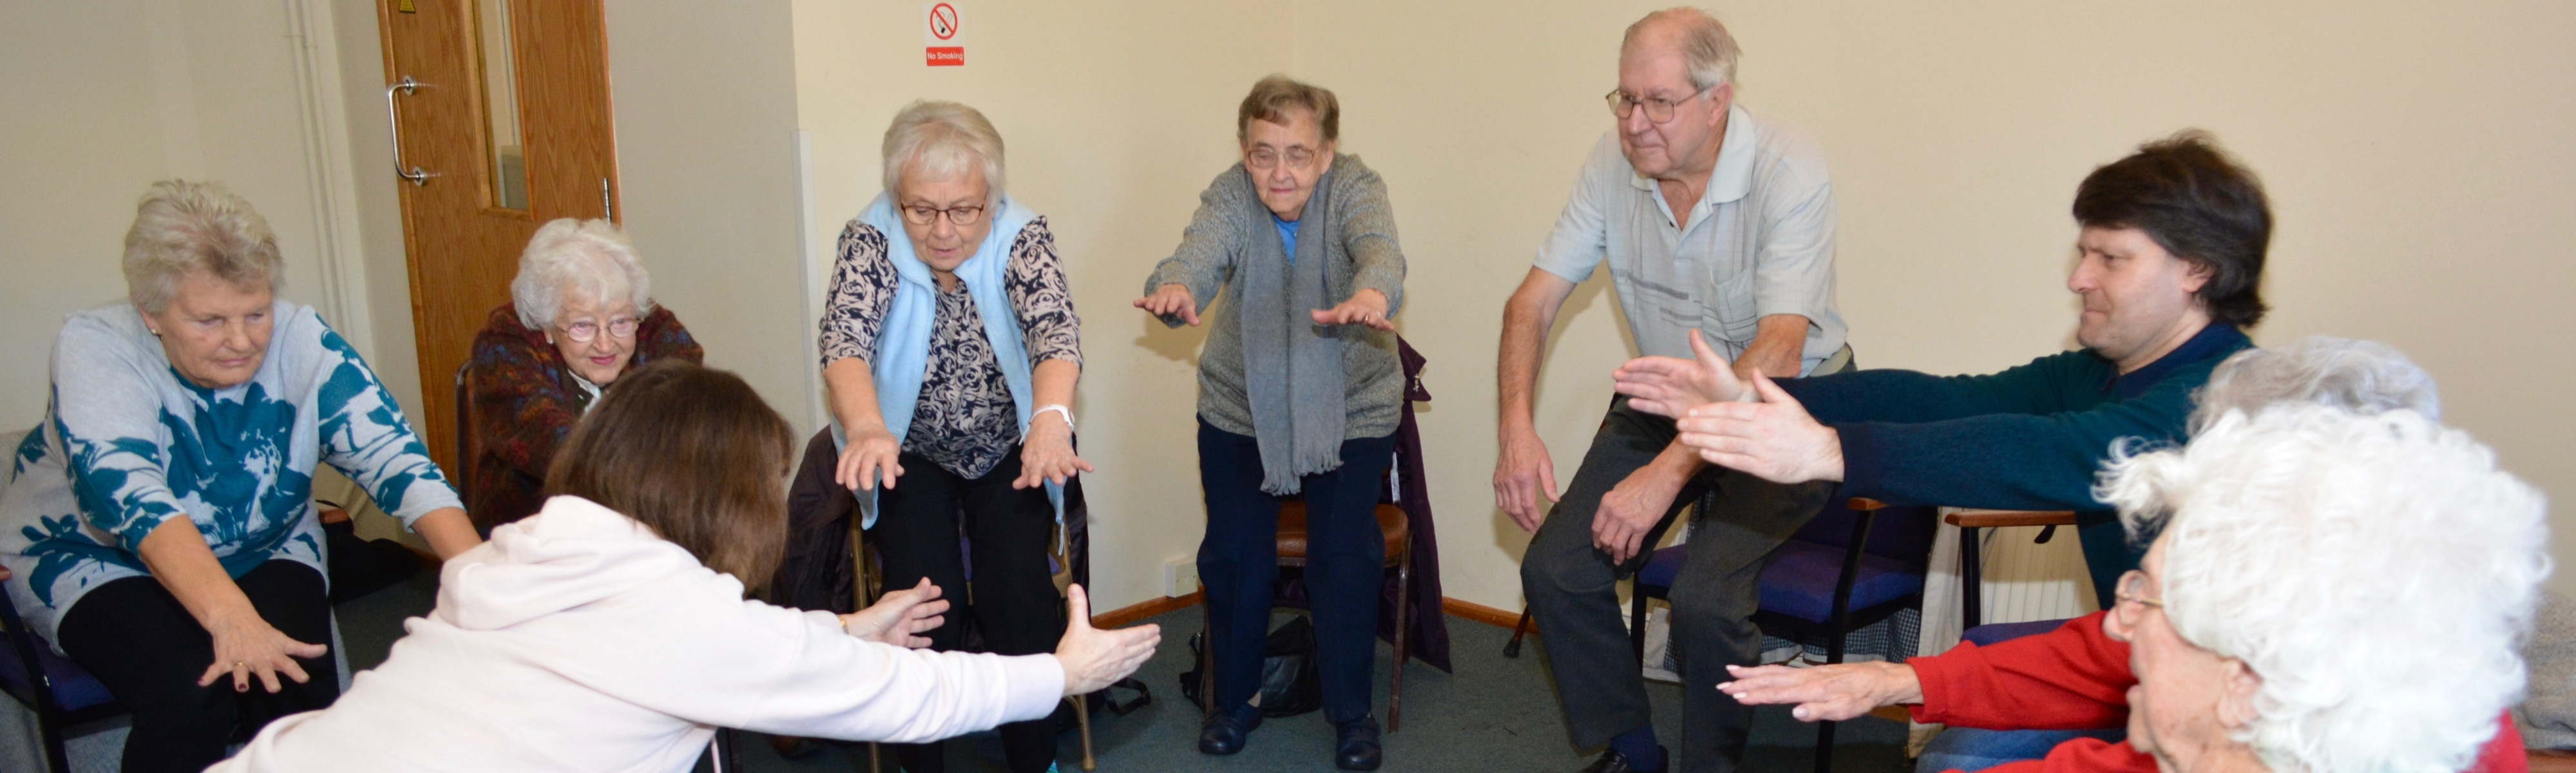 Seated yoga with Crich Area Dementia Friends by Paul Yorke